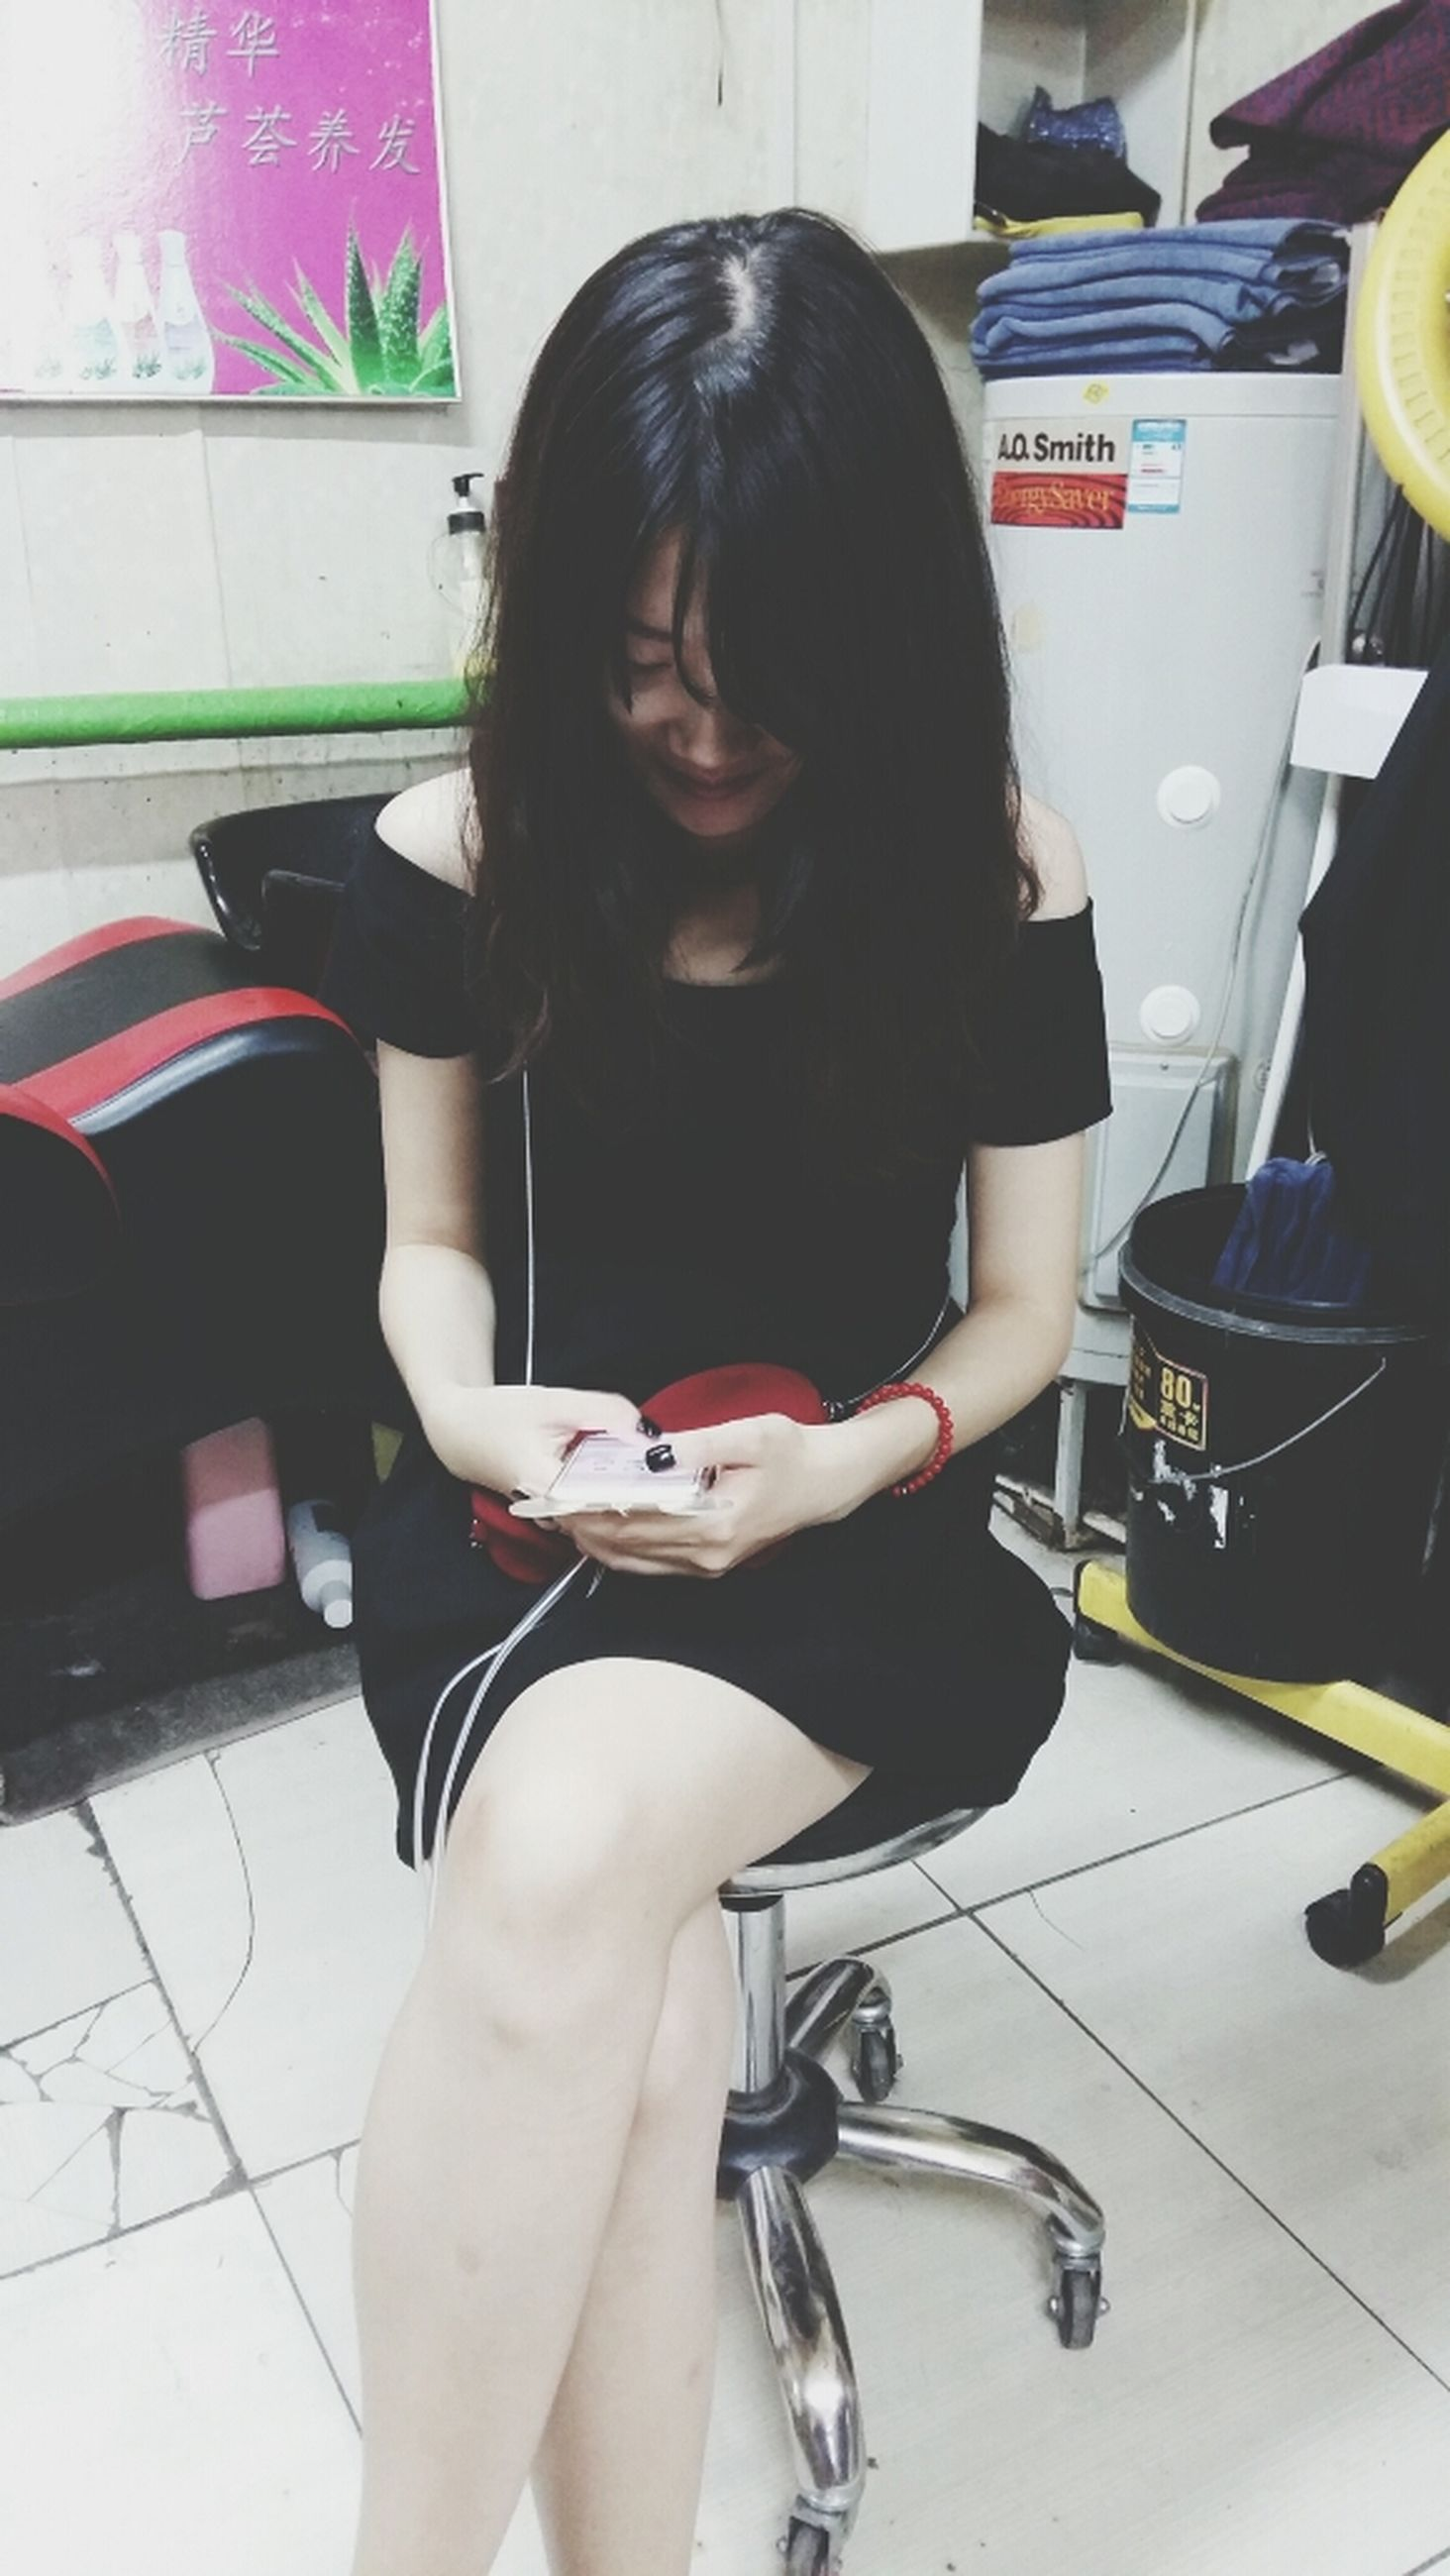 young adult, lifestyles, indoors, holding, casual clothing, person, leisure activity, sitting, young women, front view, three quarter length, wireless technology, standing, technology, looking at camera, communication, side view, long hair